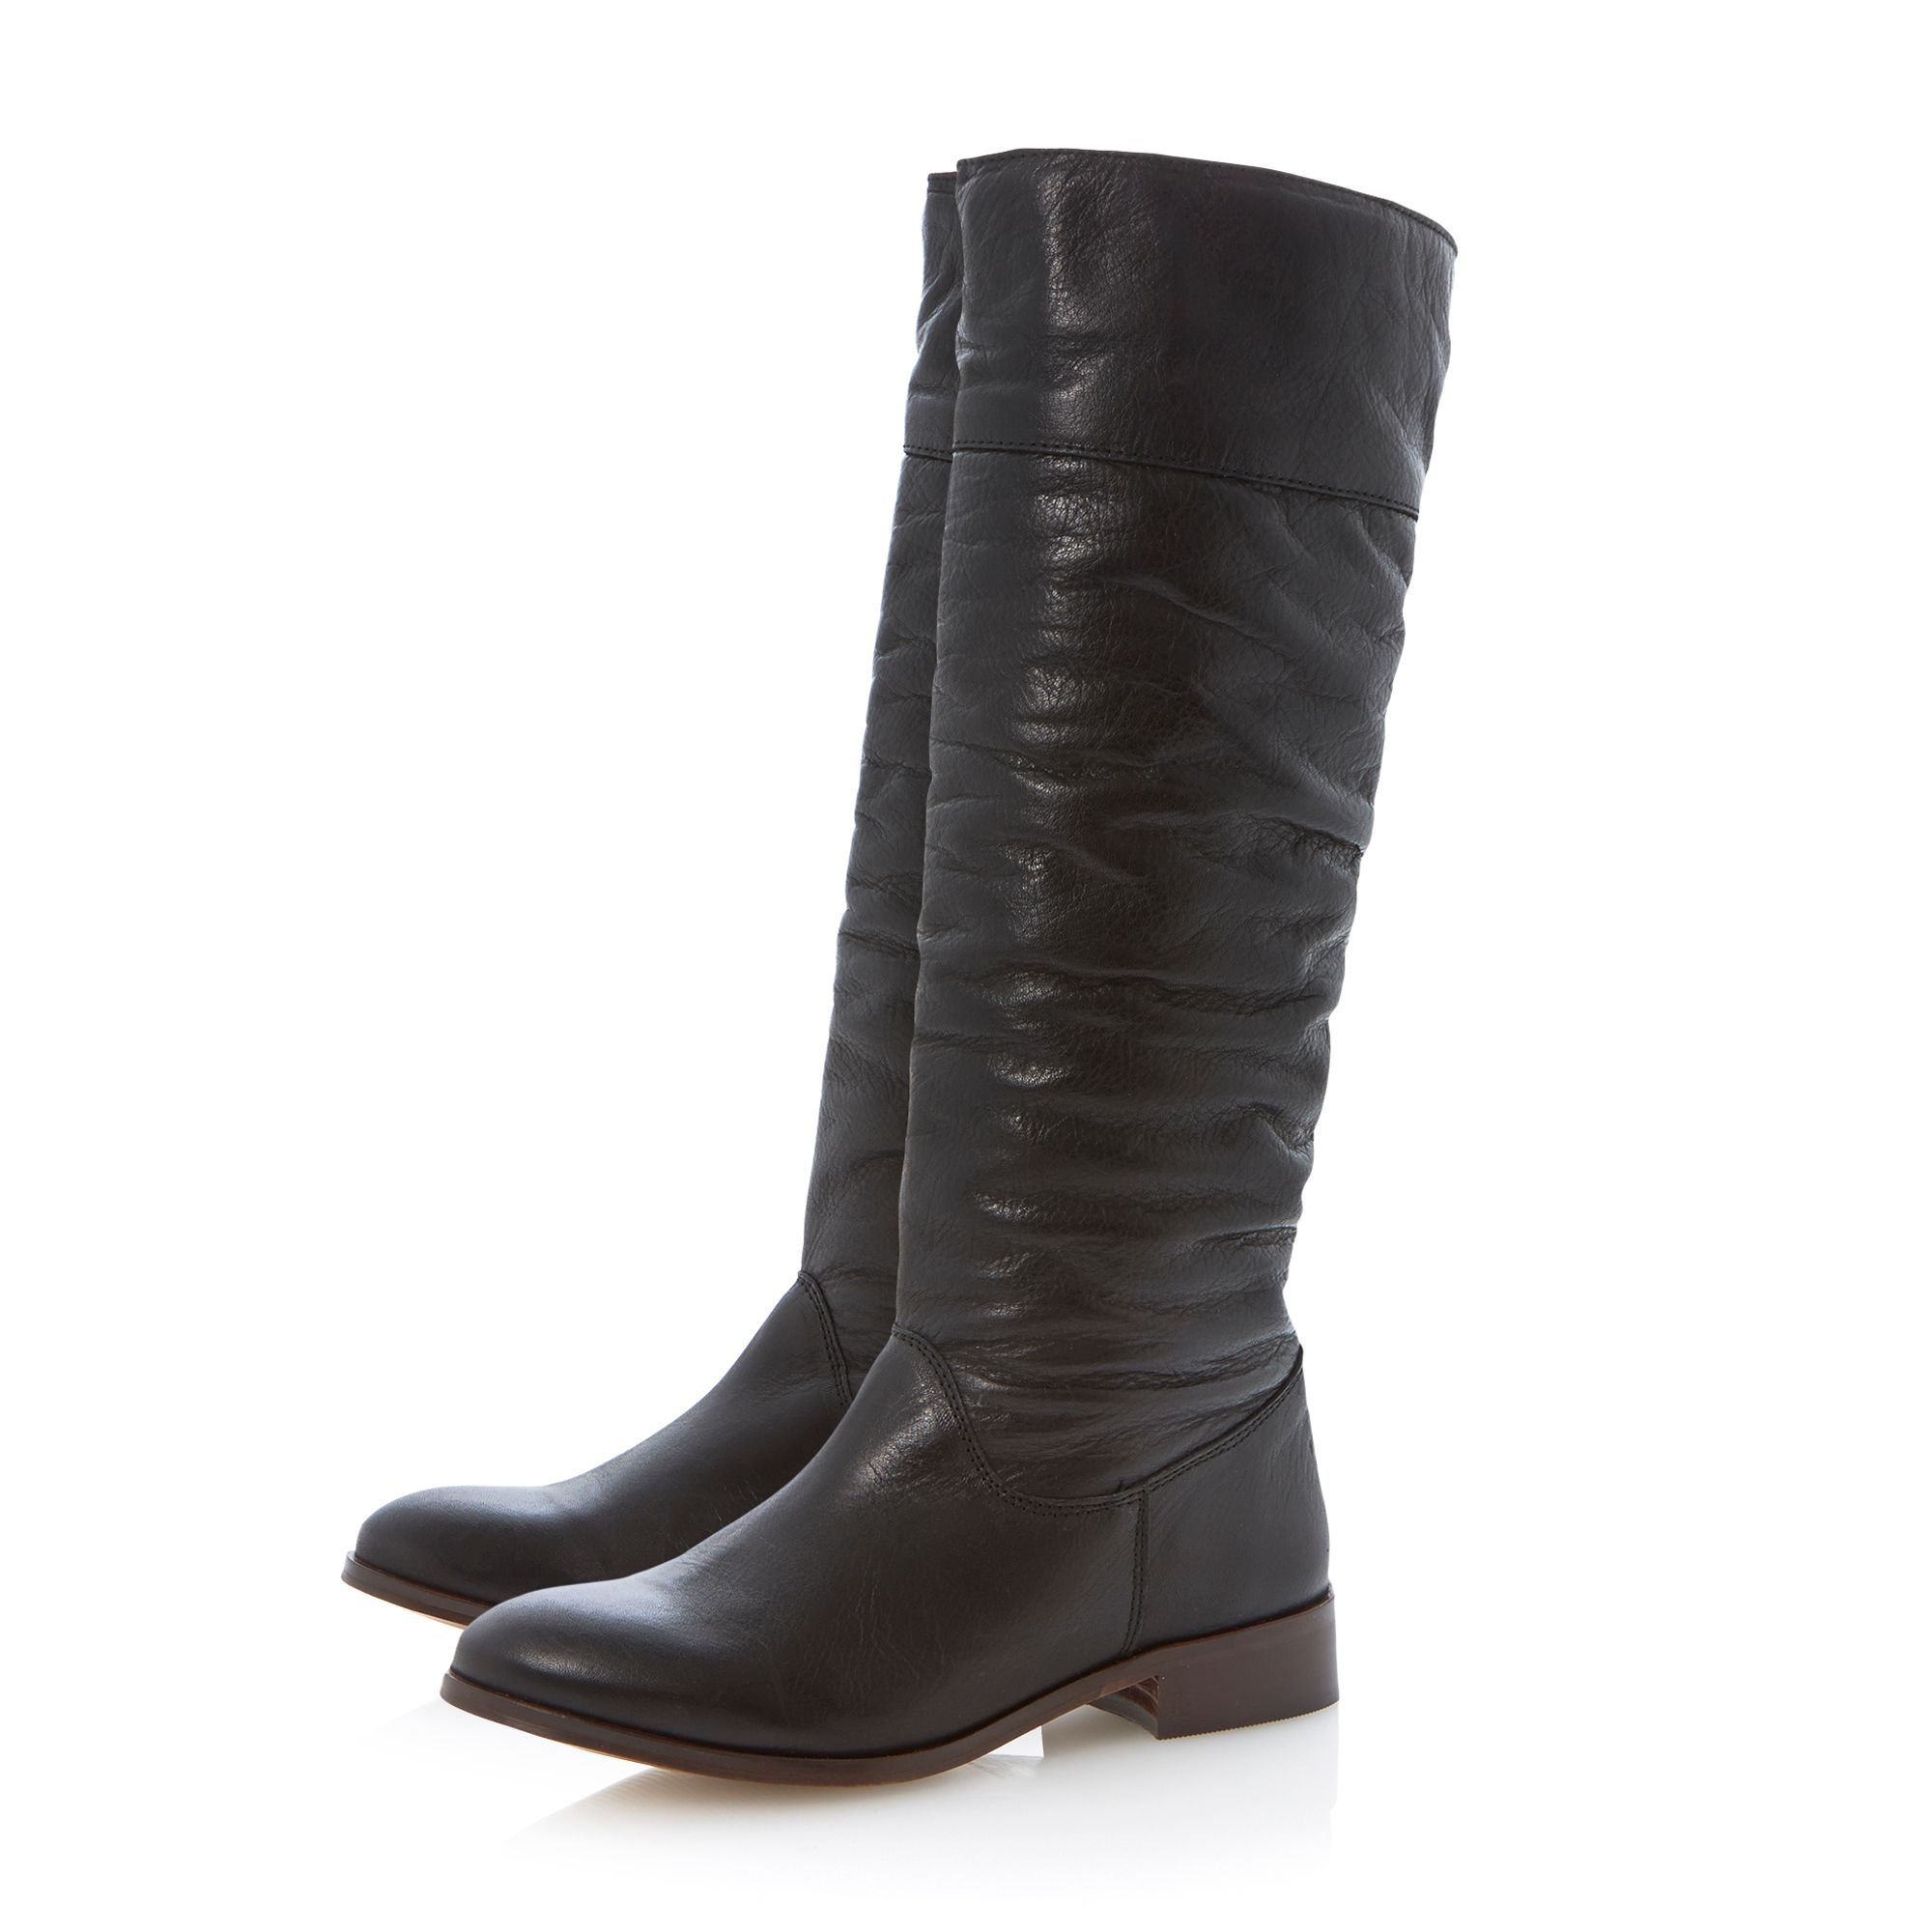 Tiffin pull on soft leather knee high boots